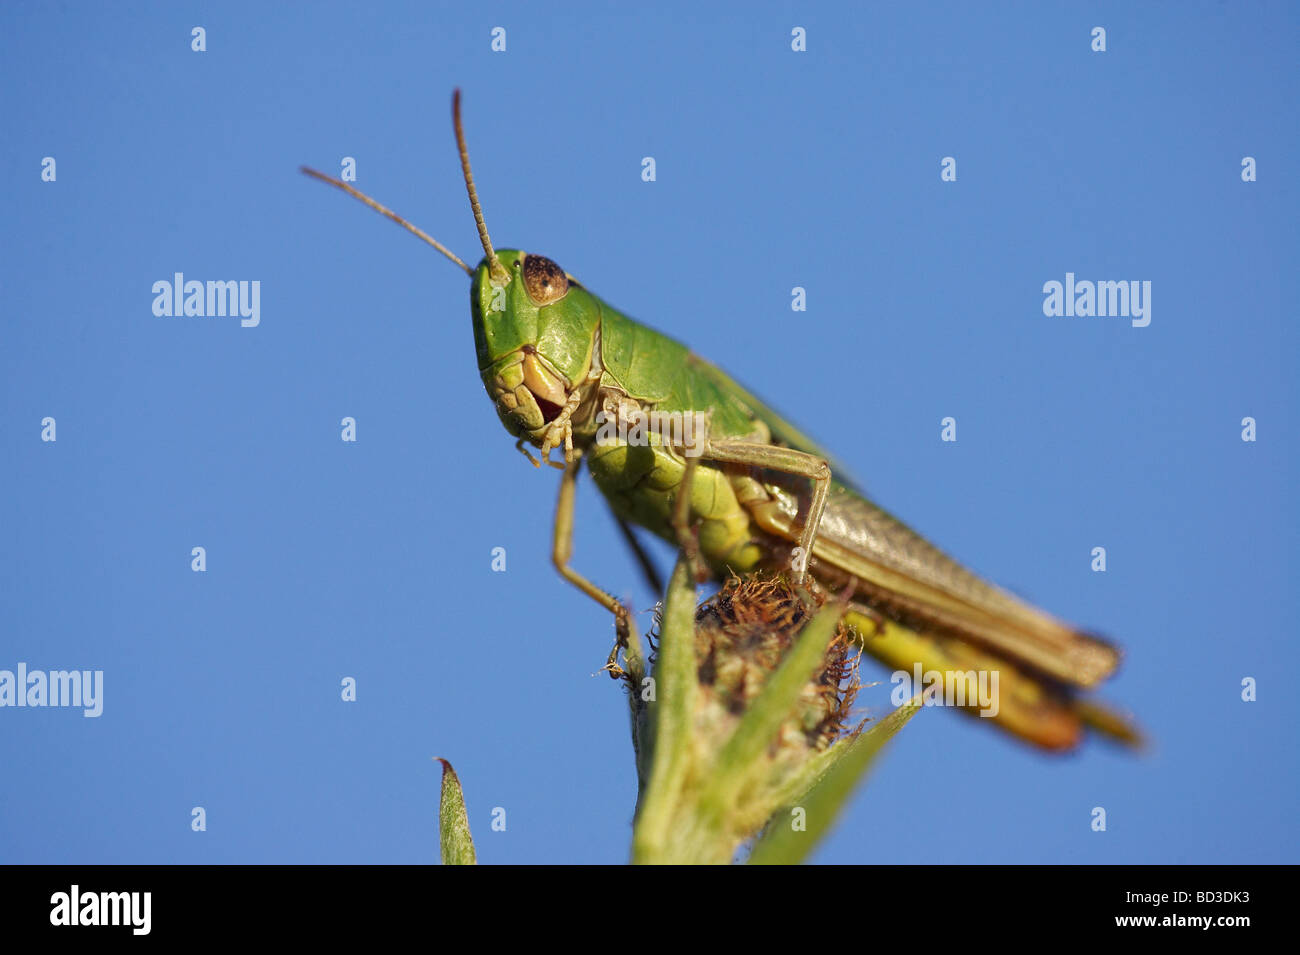 Common Meadow Grasshopper (Chorthippus parallelus), male resting on flower head - Stock Image